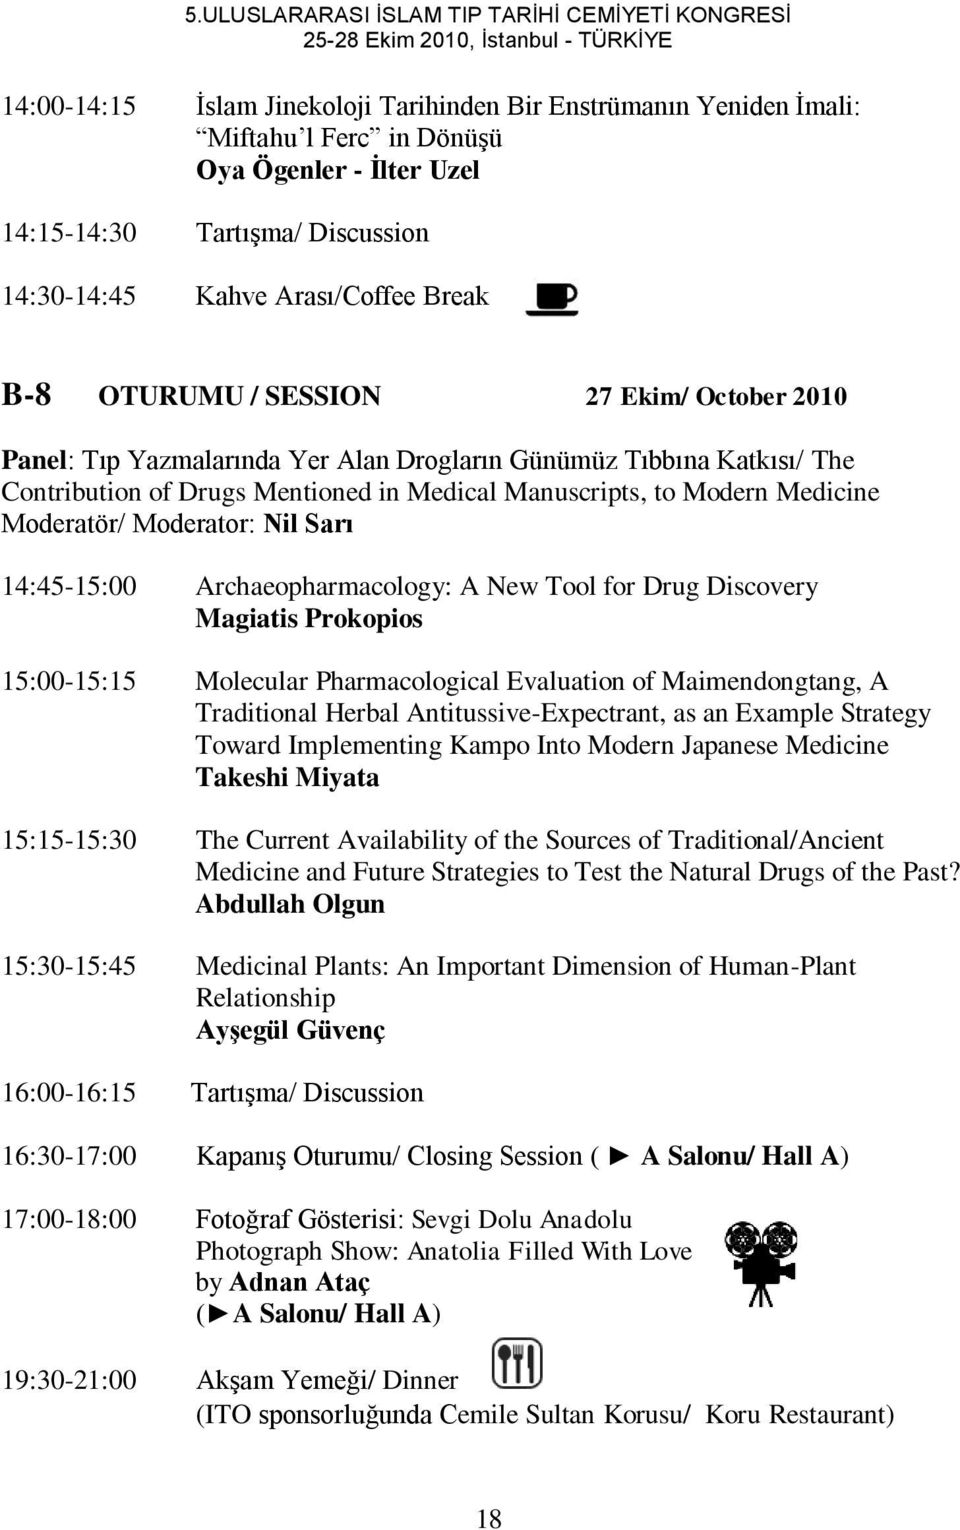 Contribution of Drugs Mentioned in Medical Manuscripts, to Modern Medicine Moderatör/ Moderator: Nil Sarı 14:45-15:00 Archaeopharmacology: A New Tool for Drug Discovery Magiatis Prokopios 15:00-15:15